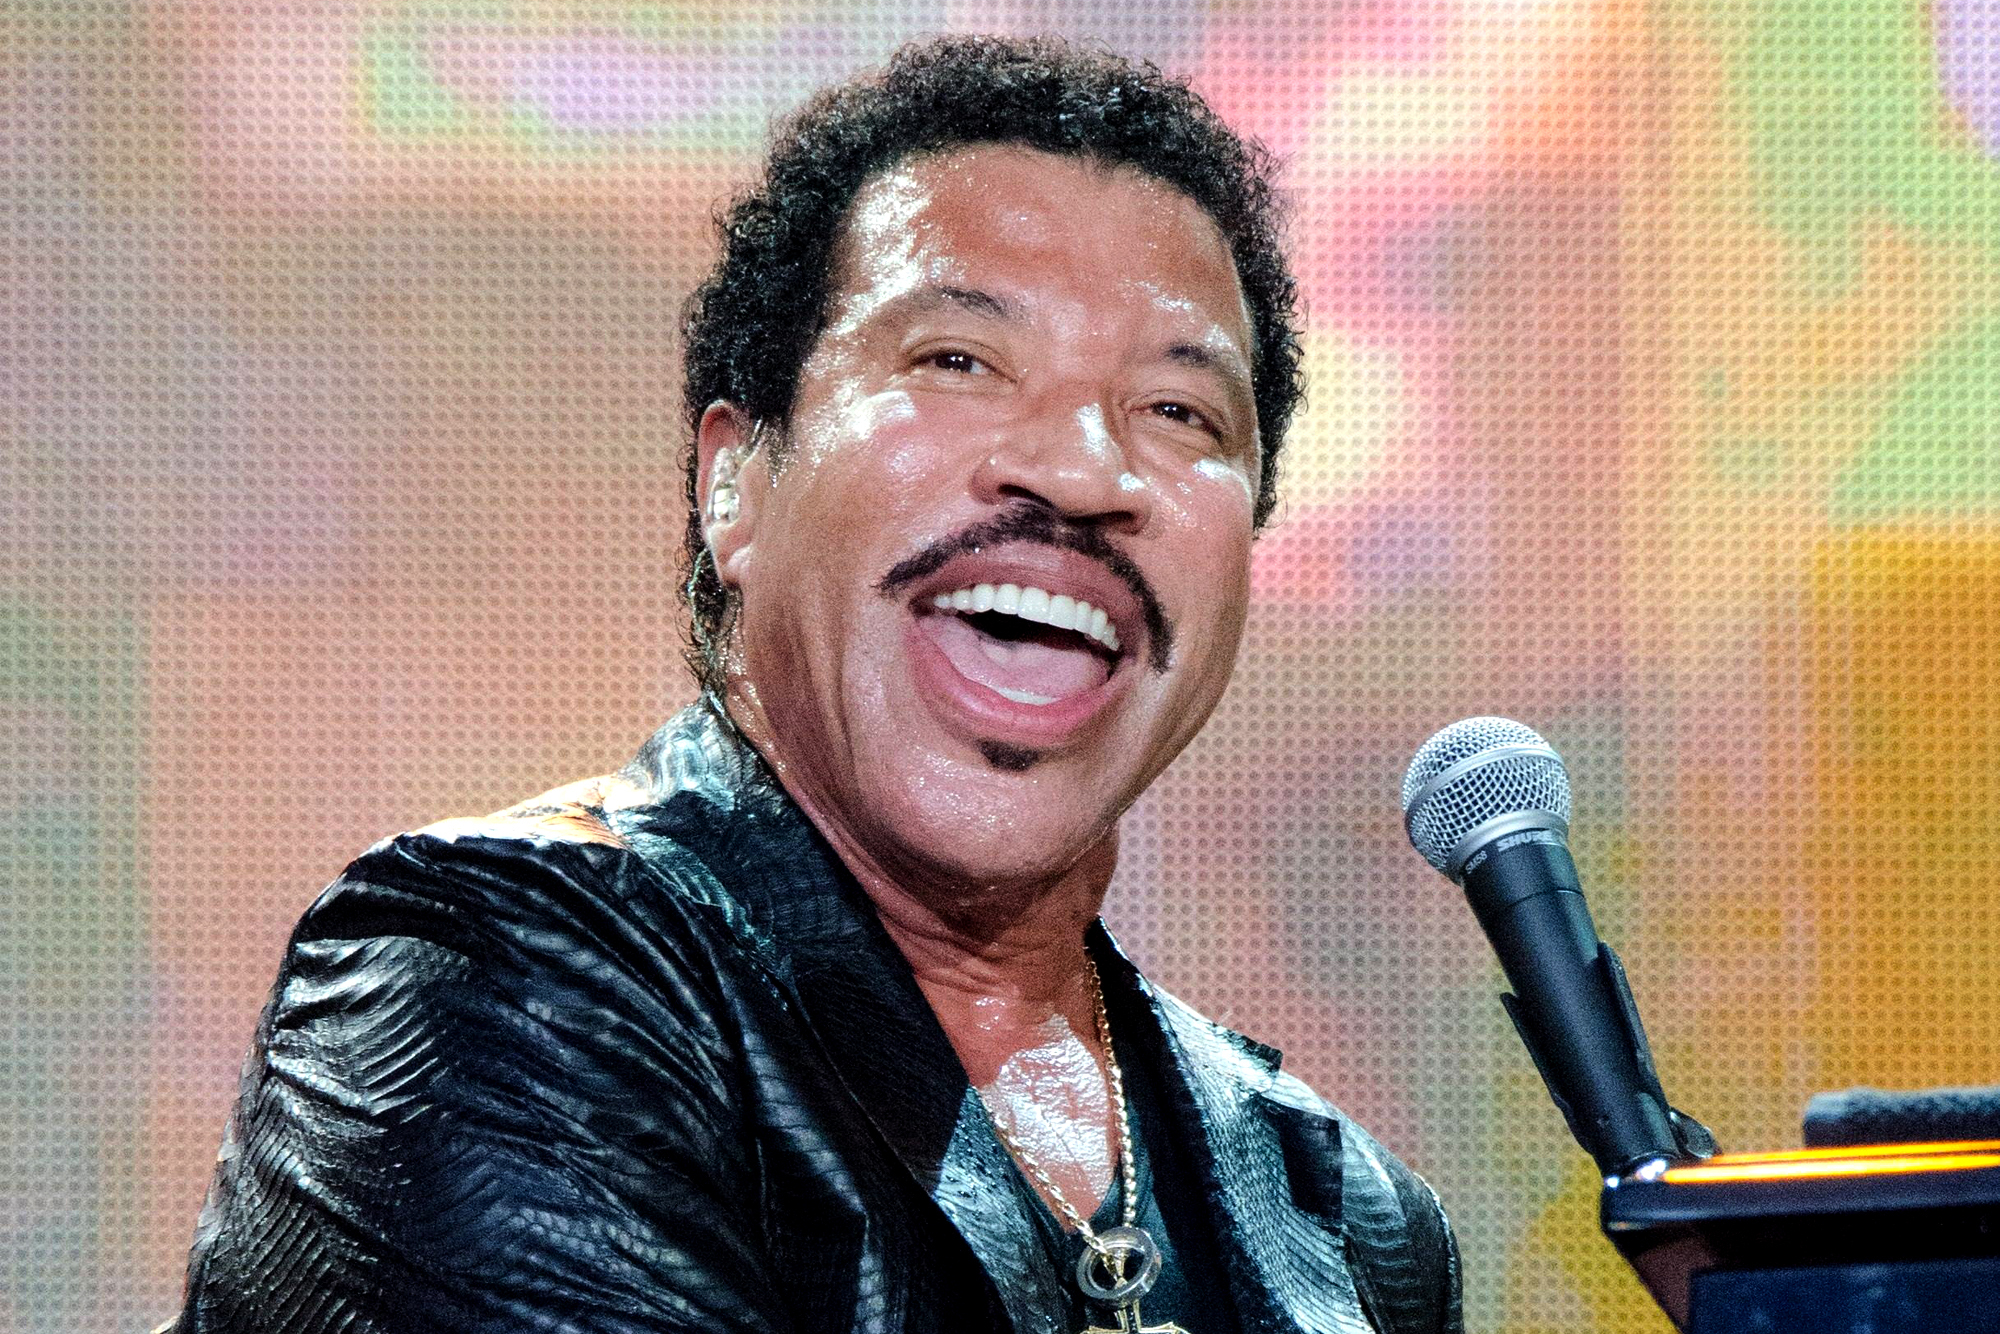 Lionel Richie High Definition Wallpapers